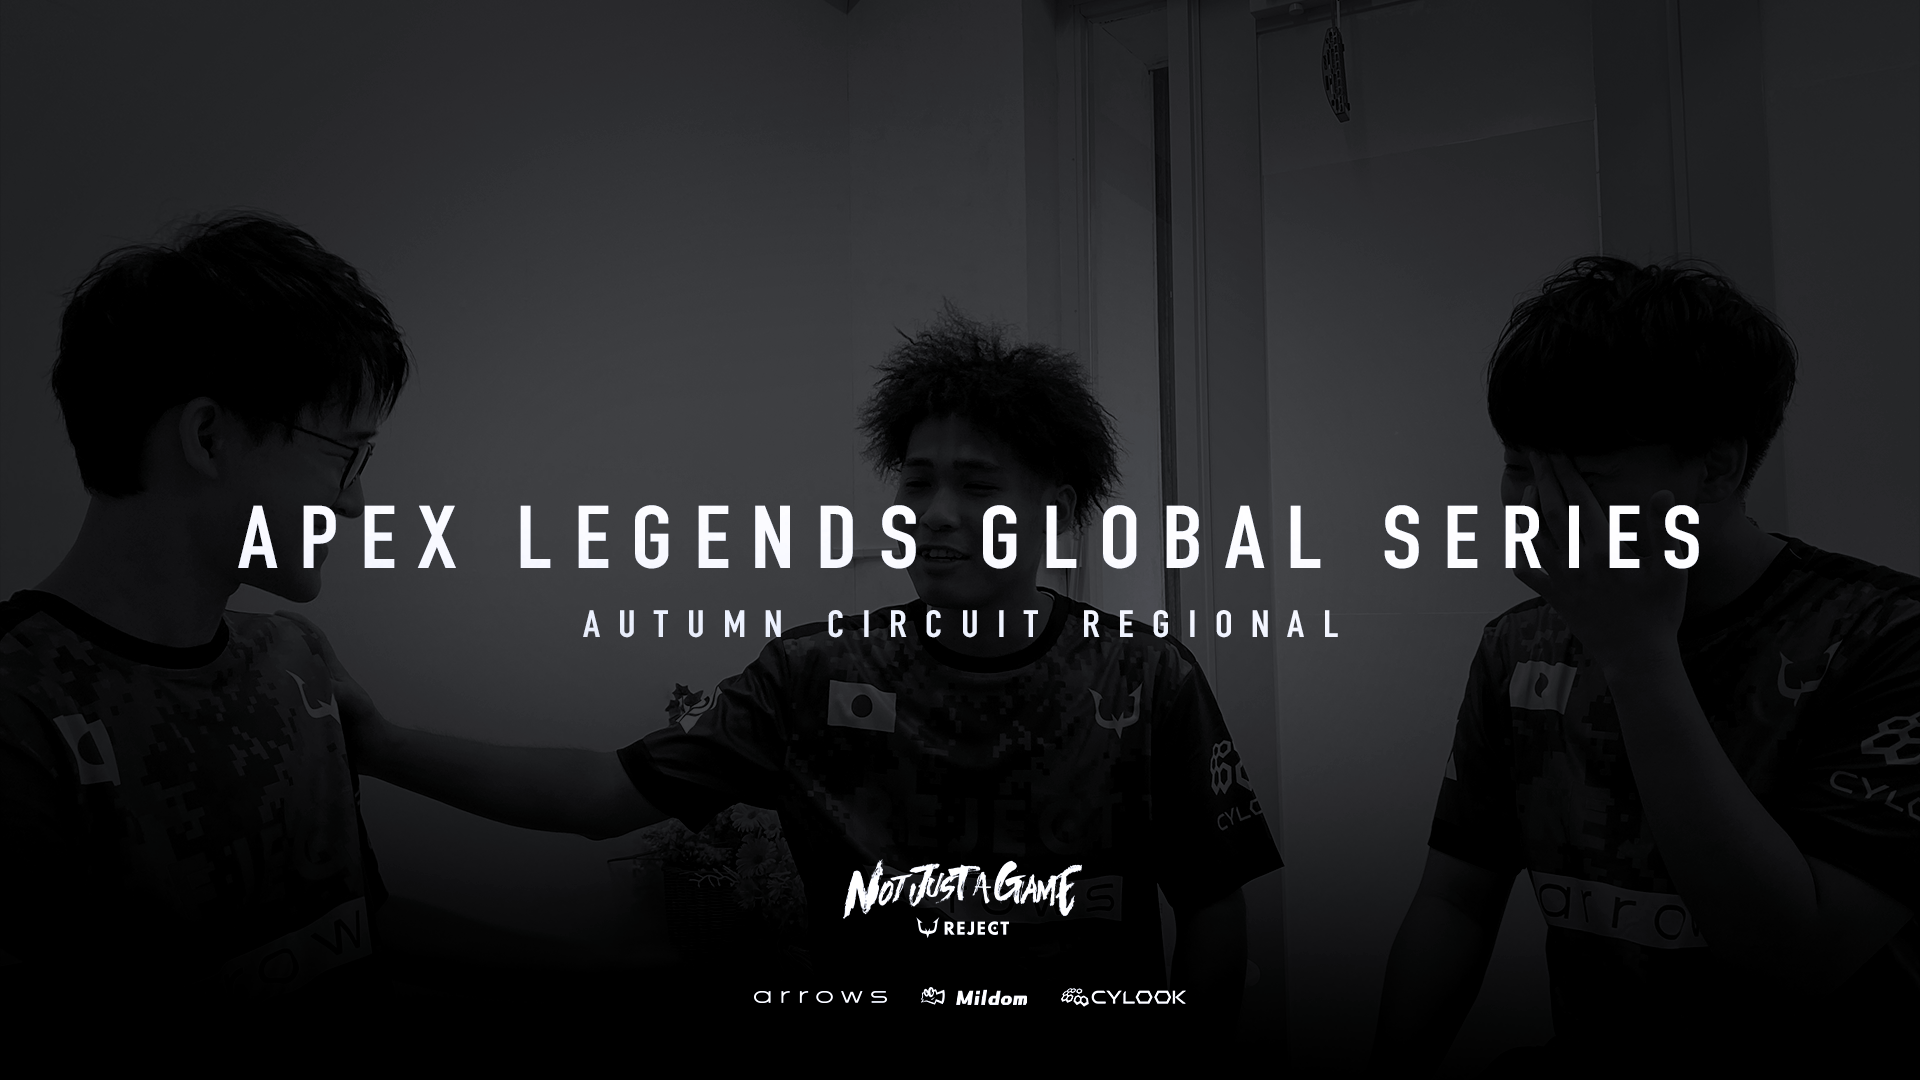 【APEX】秋の陣開幕『Apex Legends Global Series Autumn Circuit』出場